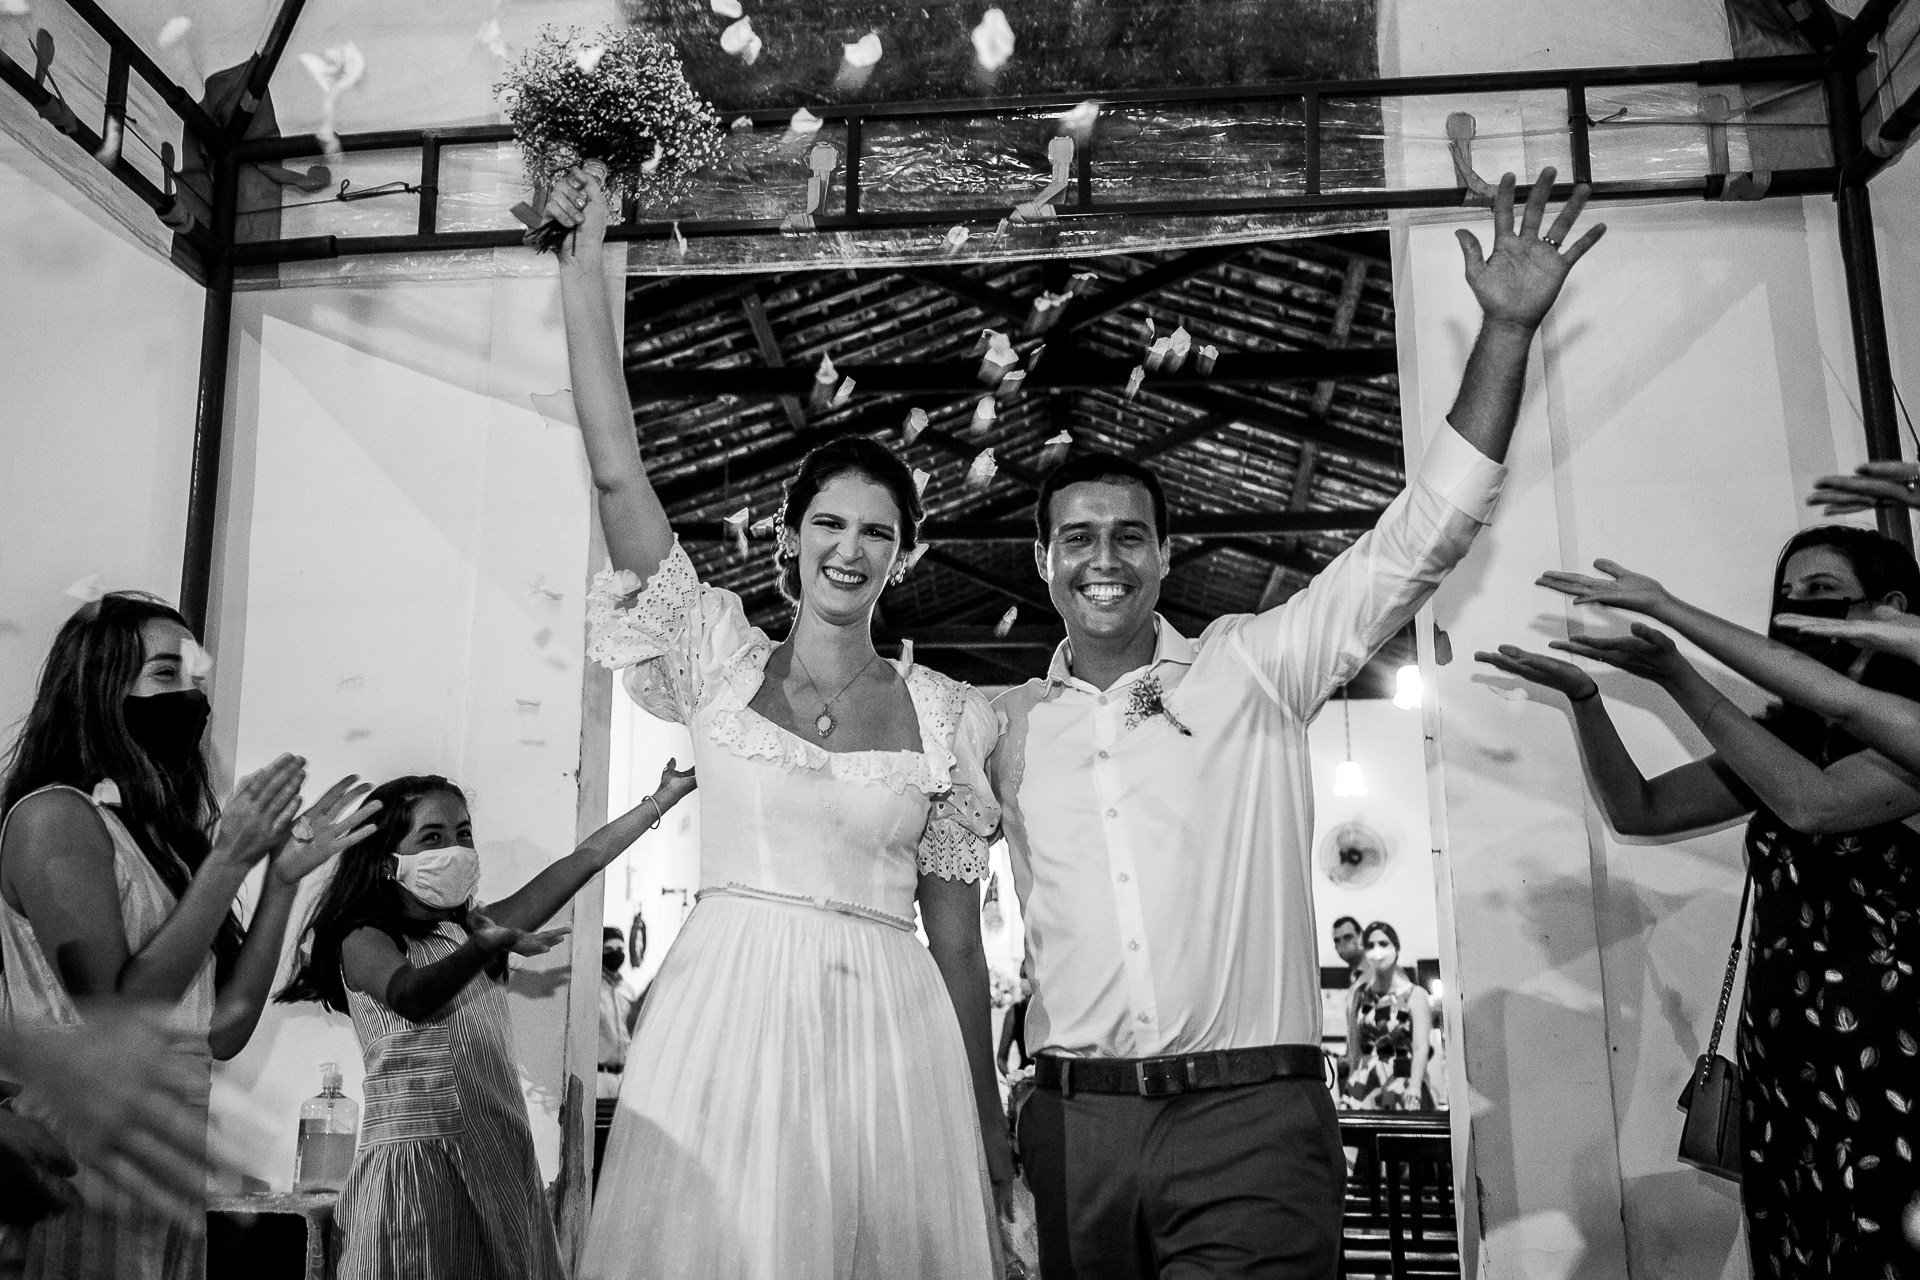 Wedding Ceremony Celebrations Image - AL, Brazil | guests toss flower petals in the air to celebrate